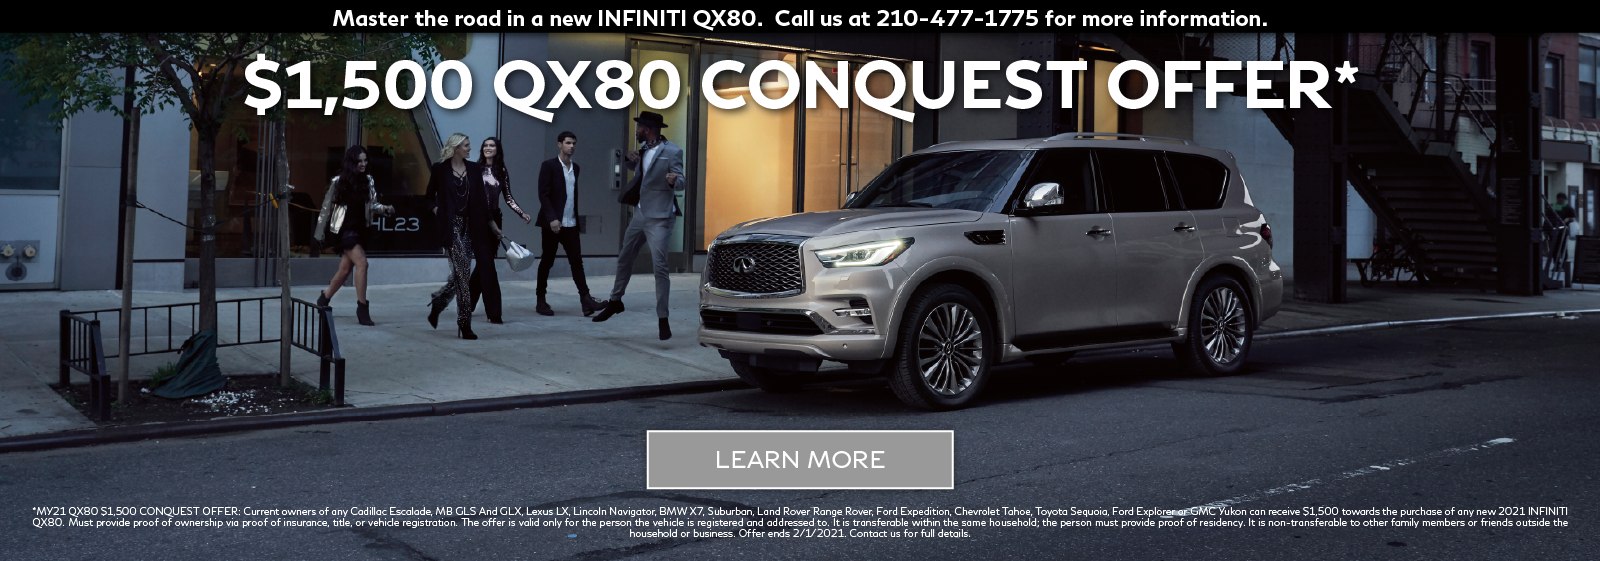 INFINITI QX80 Conquest Offer. Click to learn more.